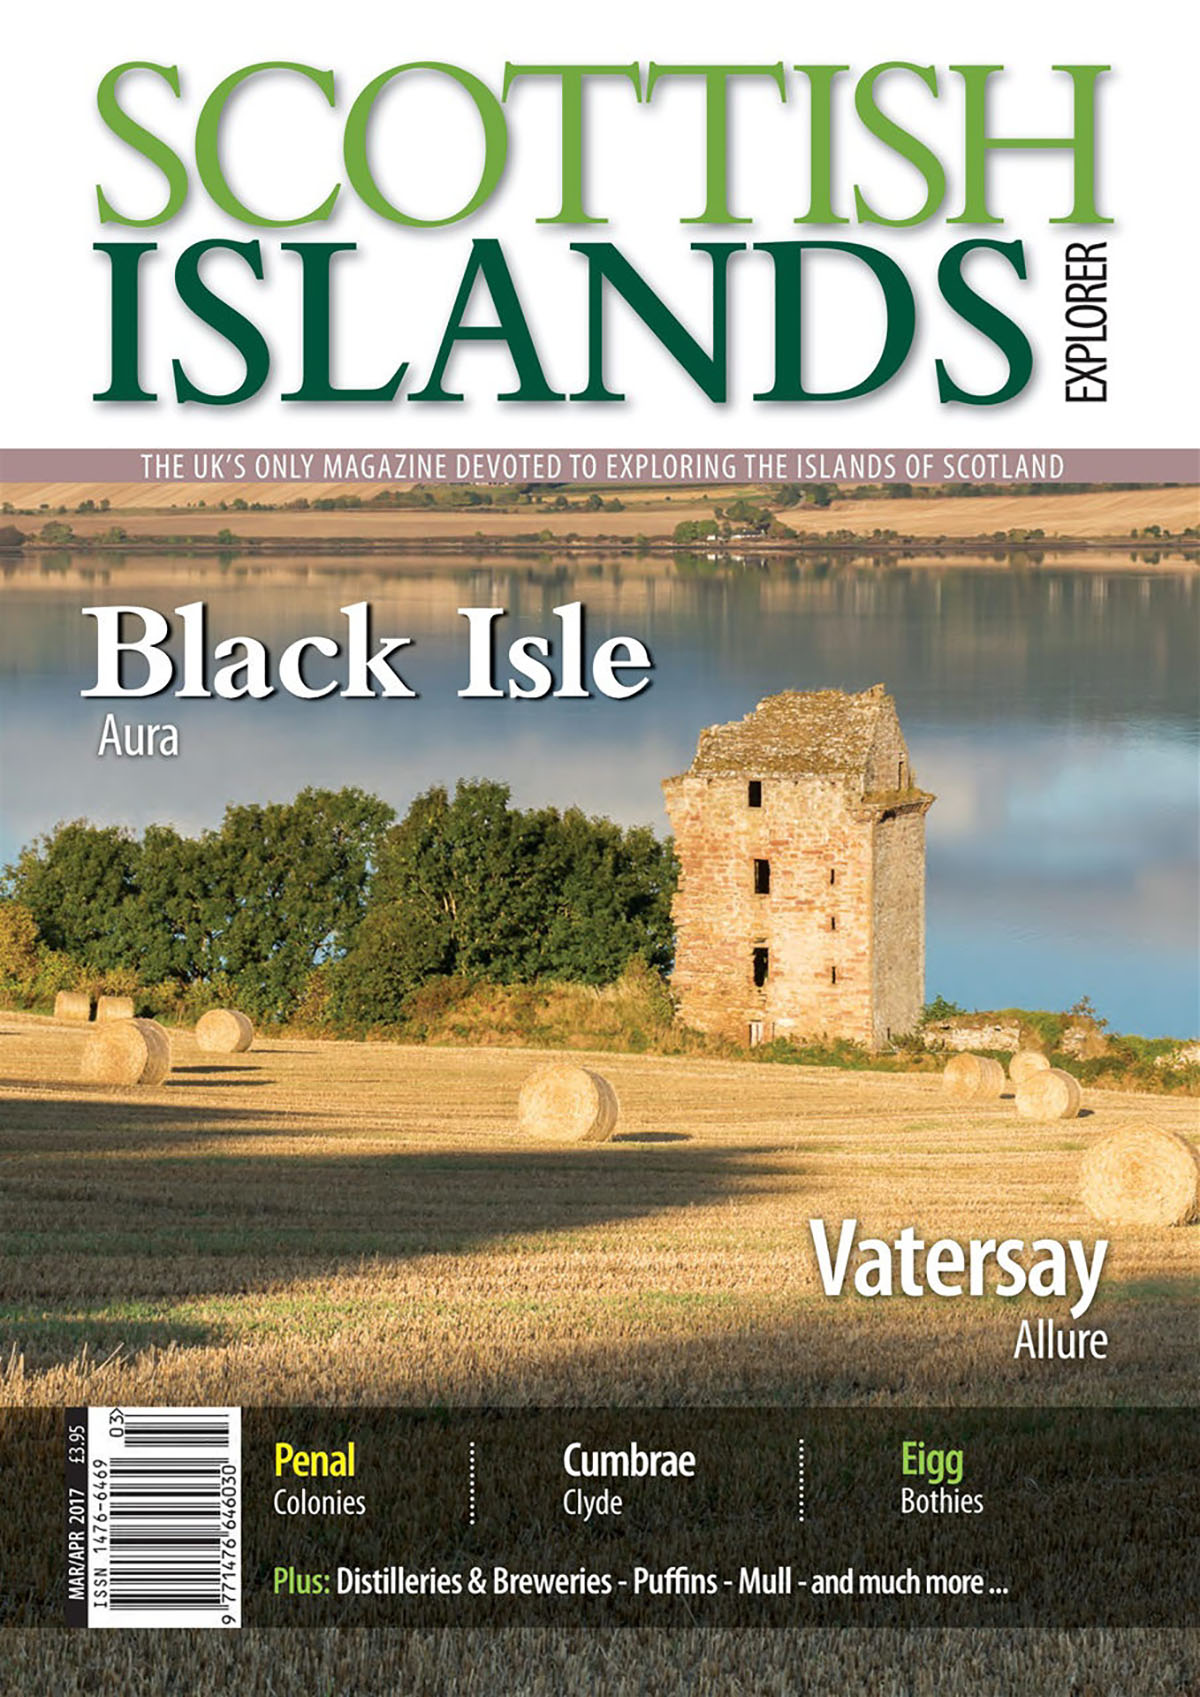 Guest blogger - front cover of Scottish Islands Explorer with an image of a ruined castle in a barley field with water behind